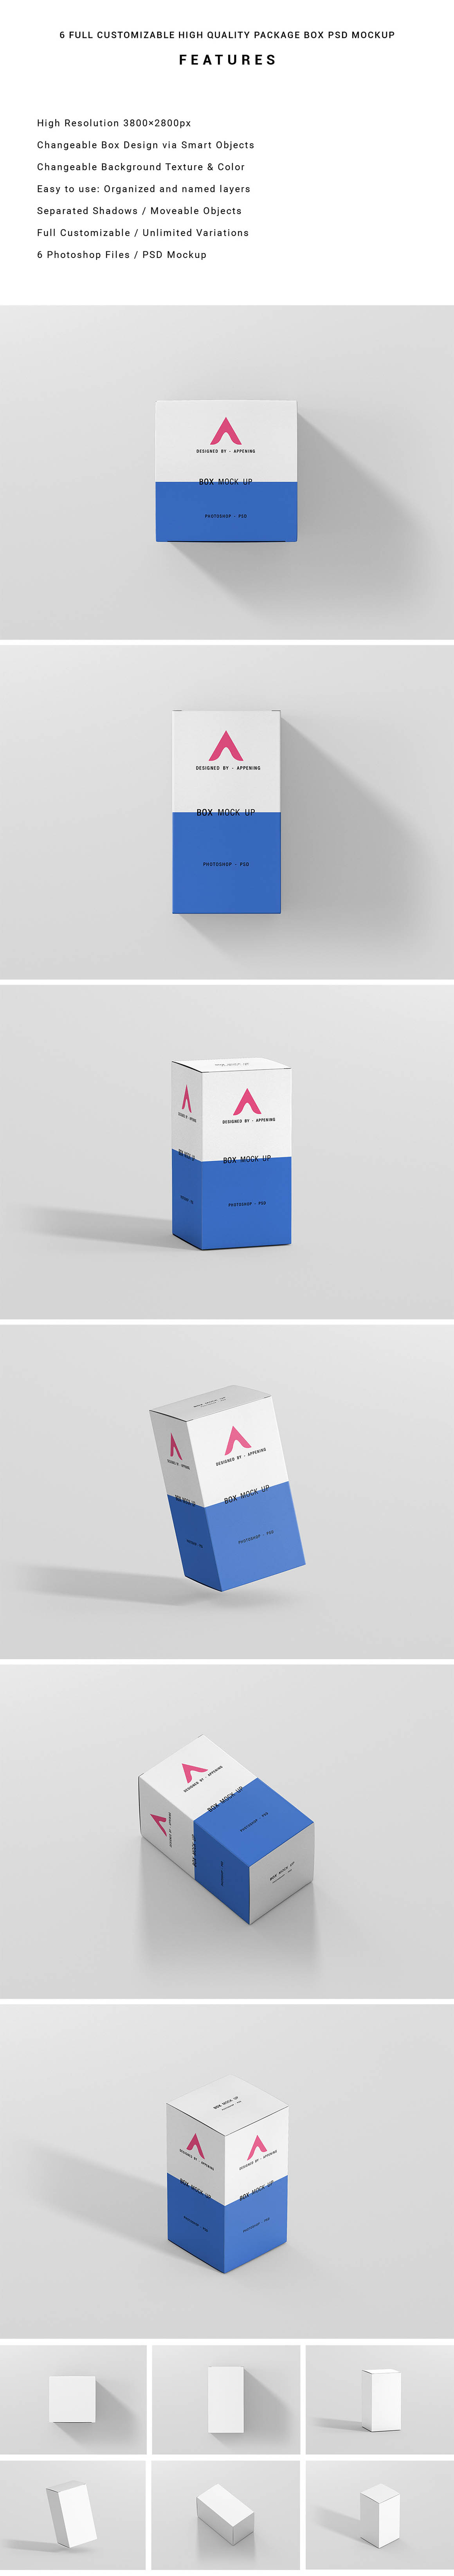 rectangle_box_mockup2